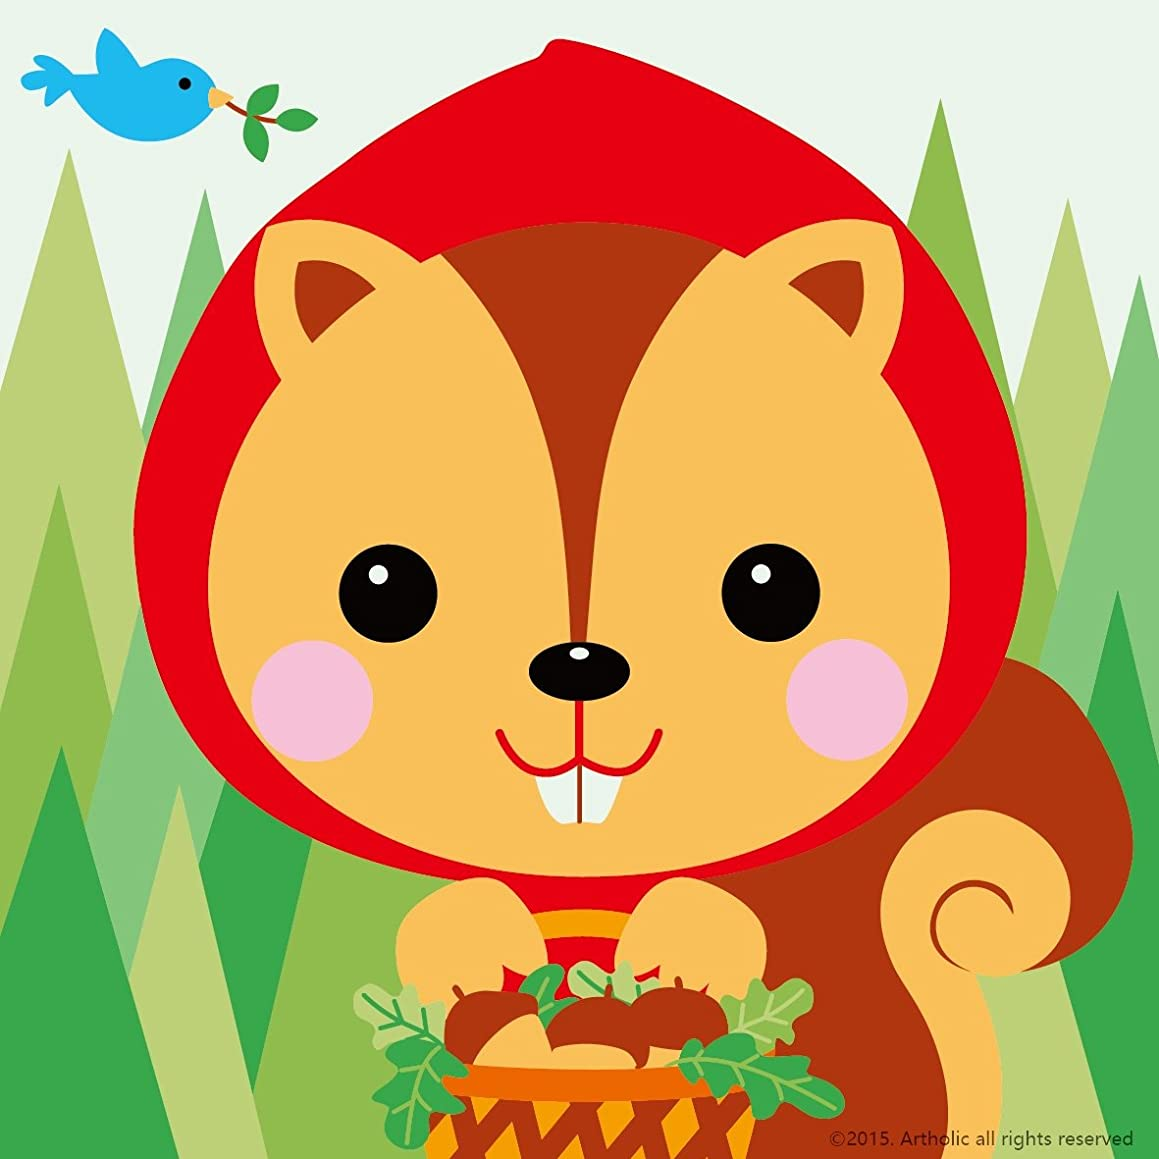 DIY Oil Painting, Paint by Numbers Kits for Kids - Little Squirrel 8